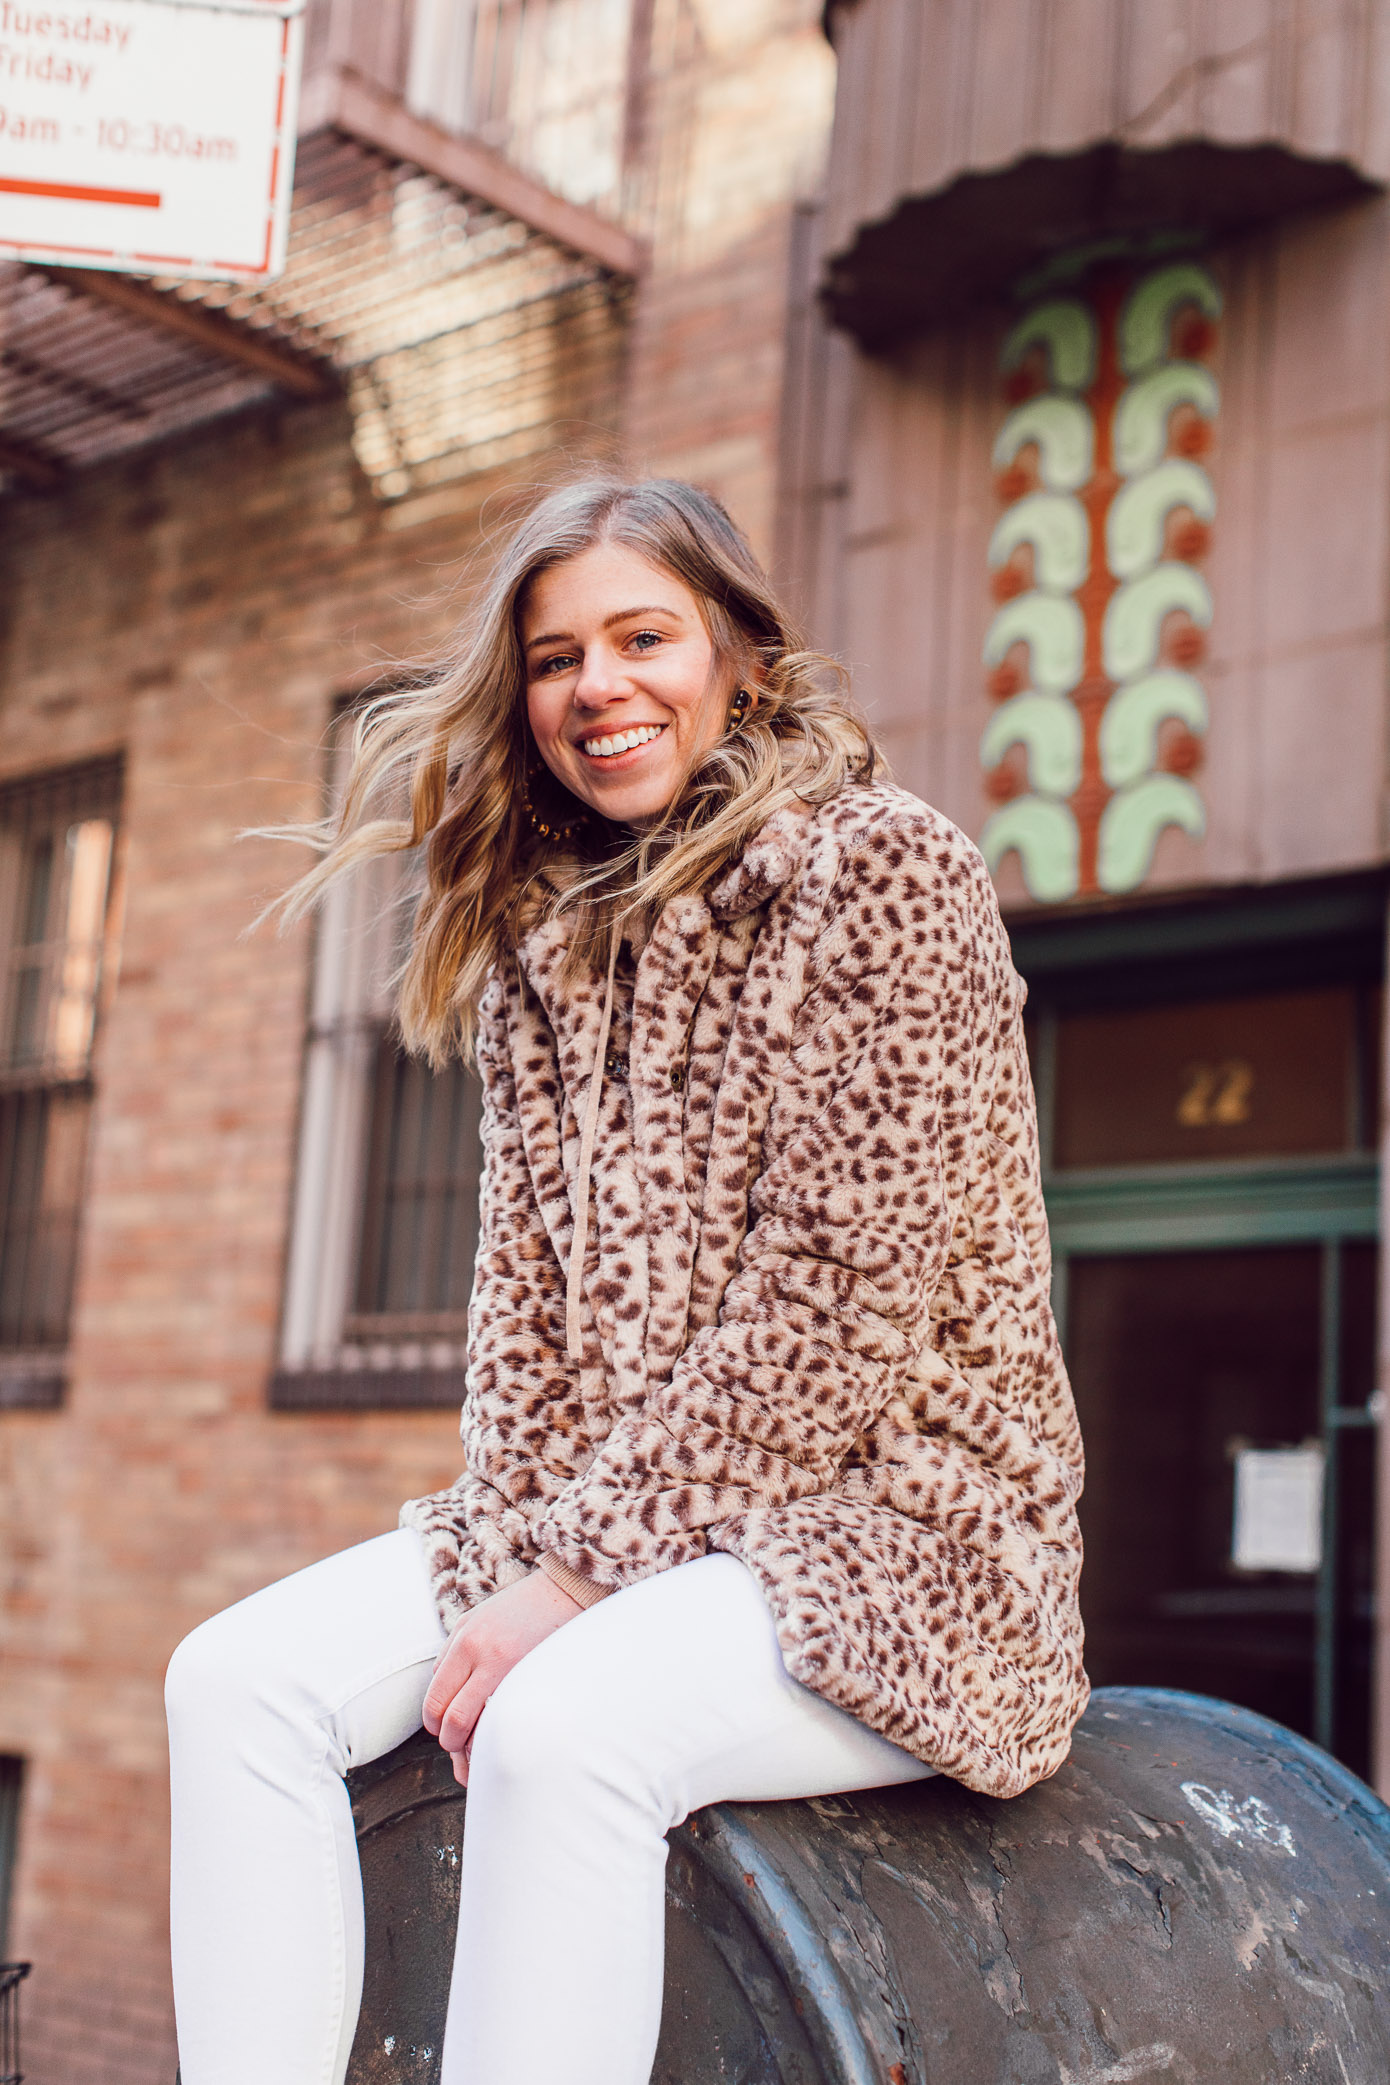 Leopard Faux Fur Coat, Cashmere Hoodie | Casual Travel Style featured on Louella Reese